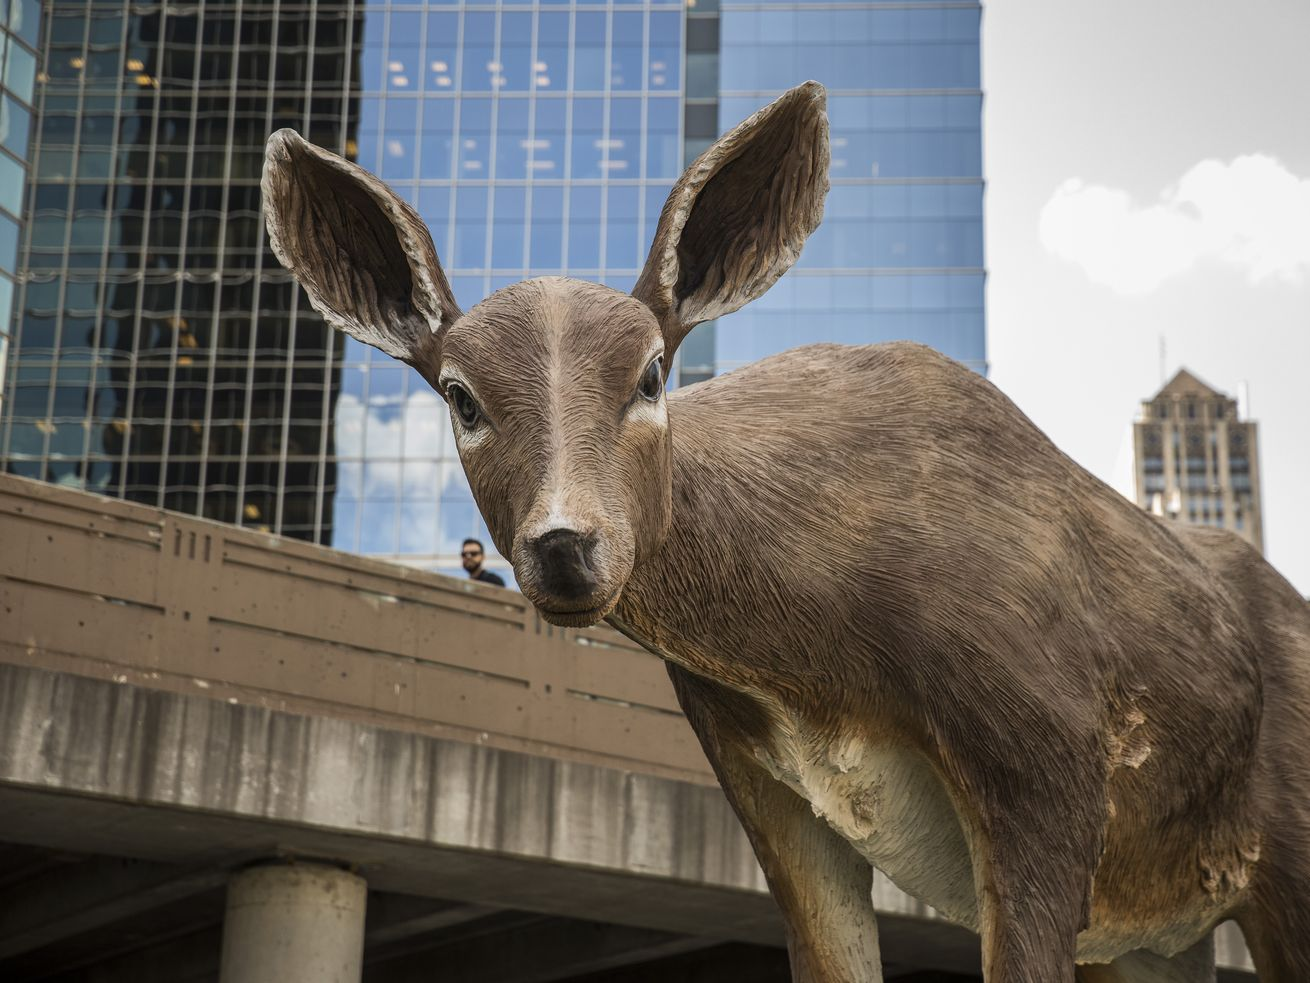 Mating season means more deer in the headlights, officials warn